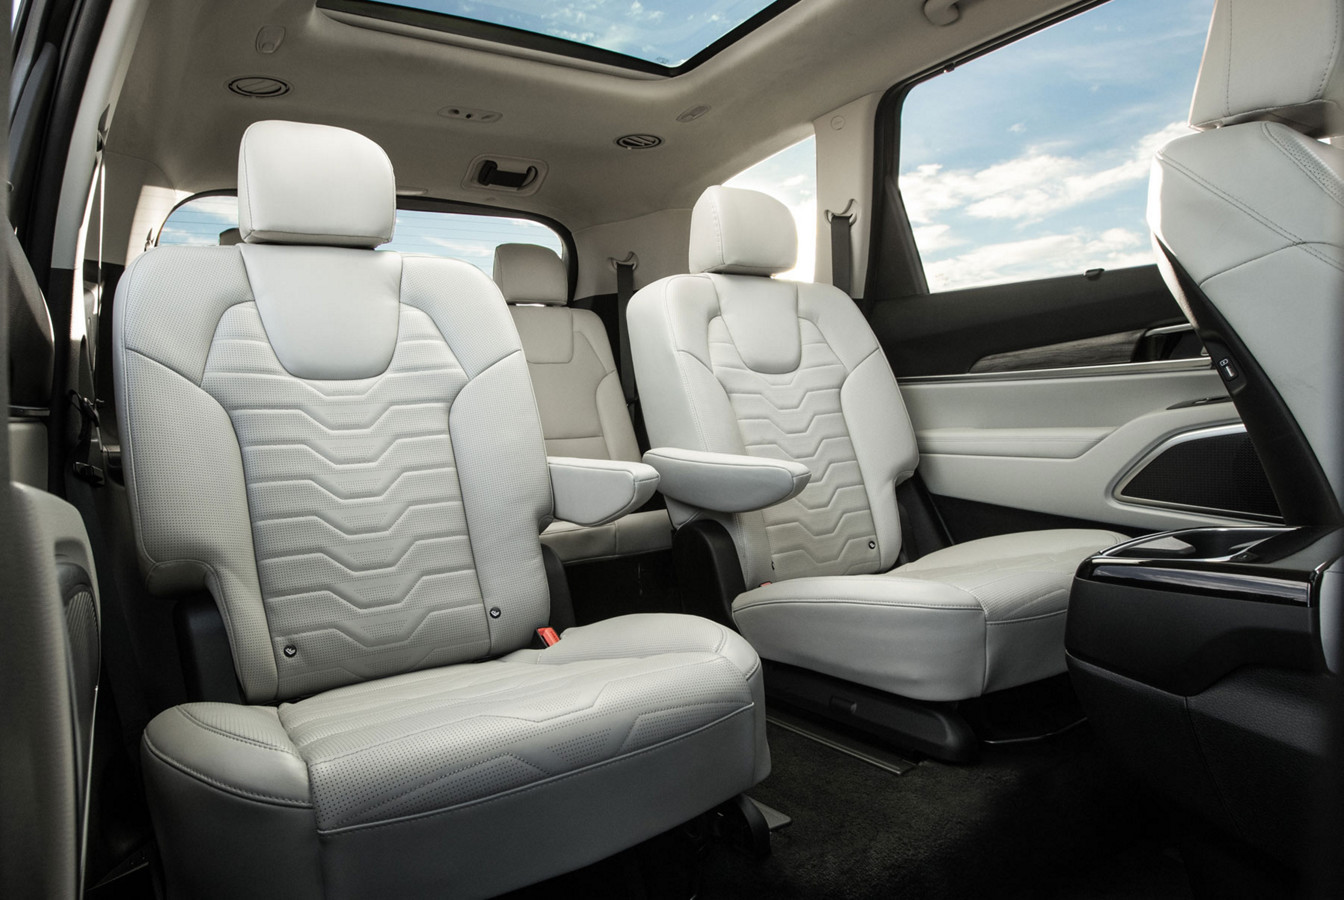 2020 Kia Telluride Interior Seating